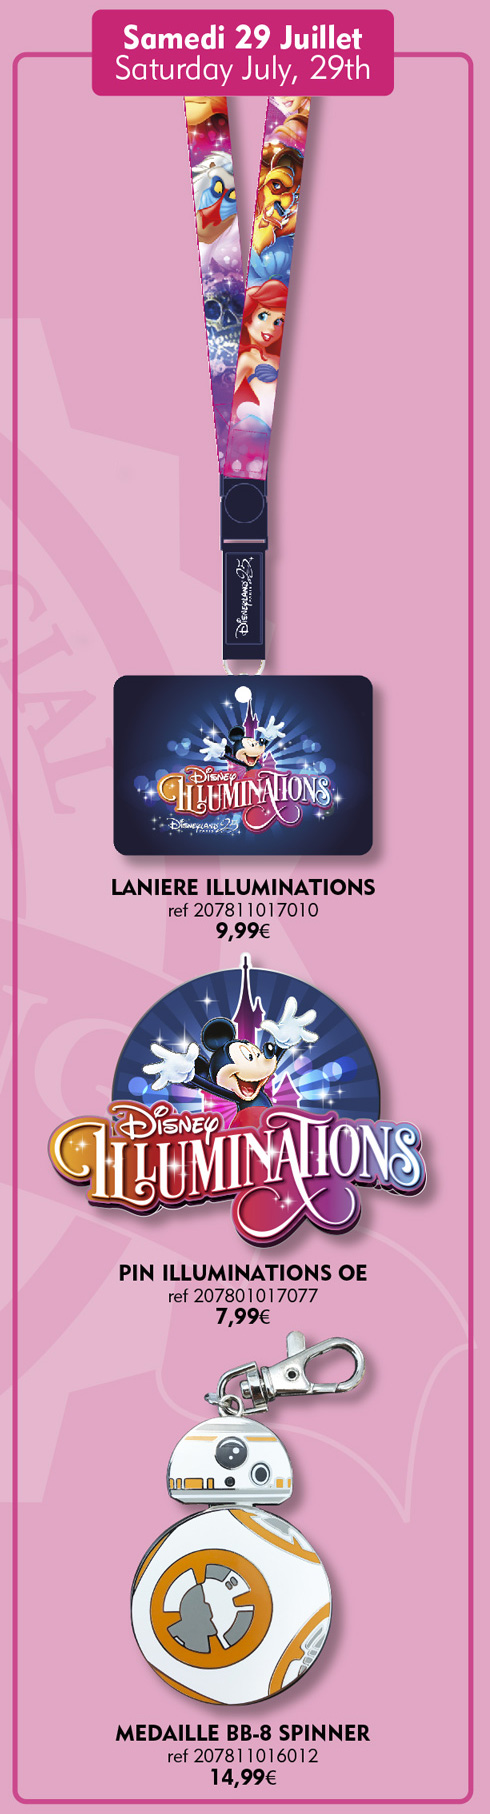 Disneyland Paris Pins For July 29th 2017